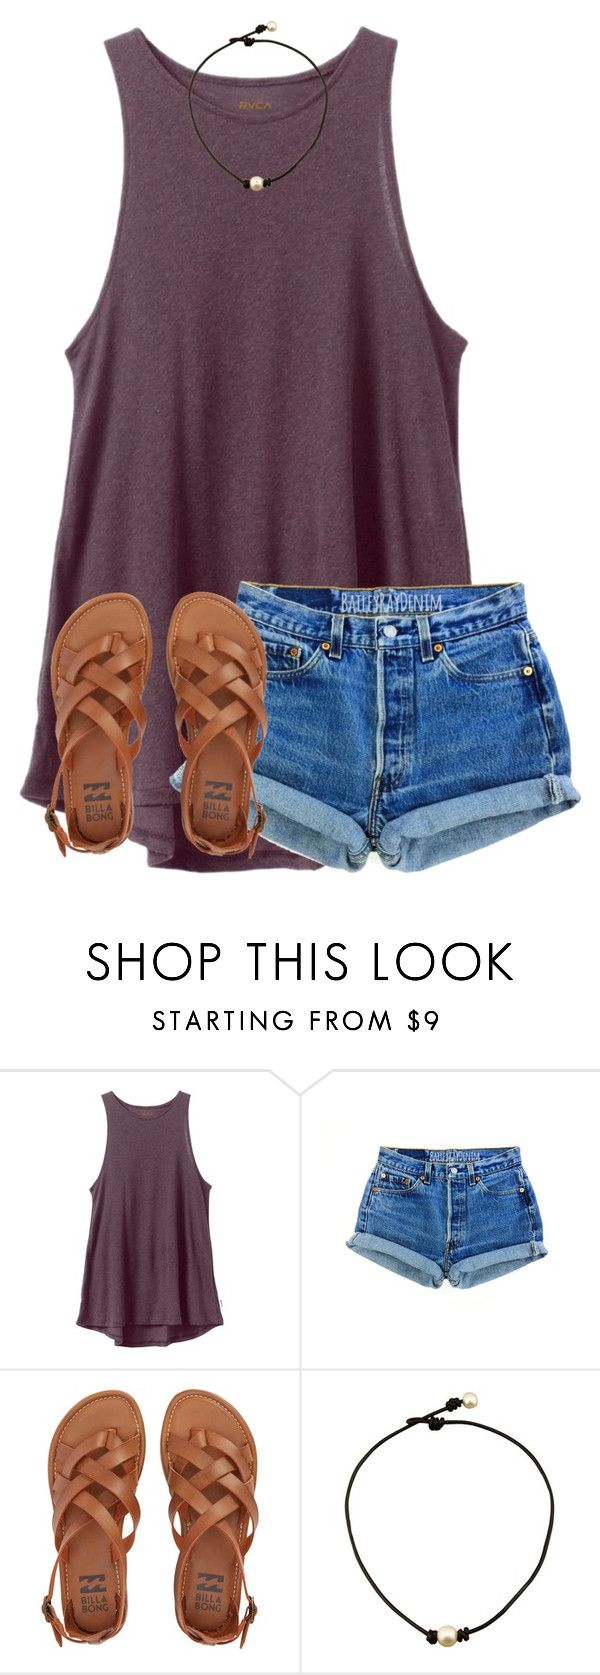 """Country tag!"" by ponyboysgirlfriend ❤ liked on Polyvore featuring RVCA, Levi's, Billabong, bathroom and country"